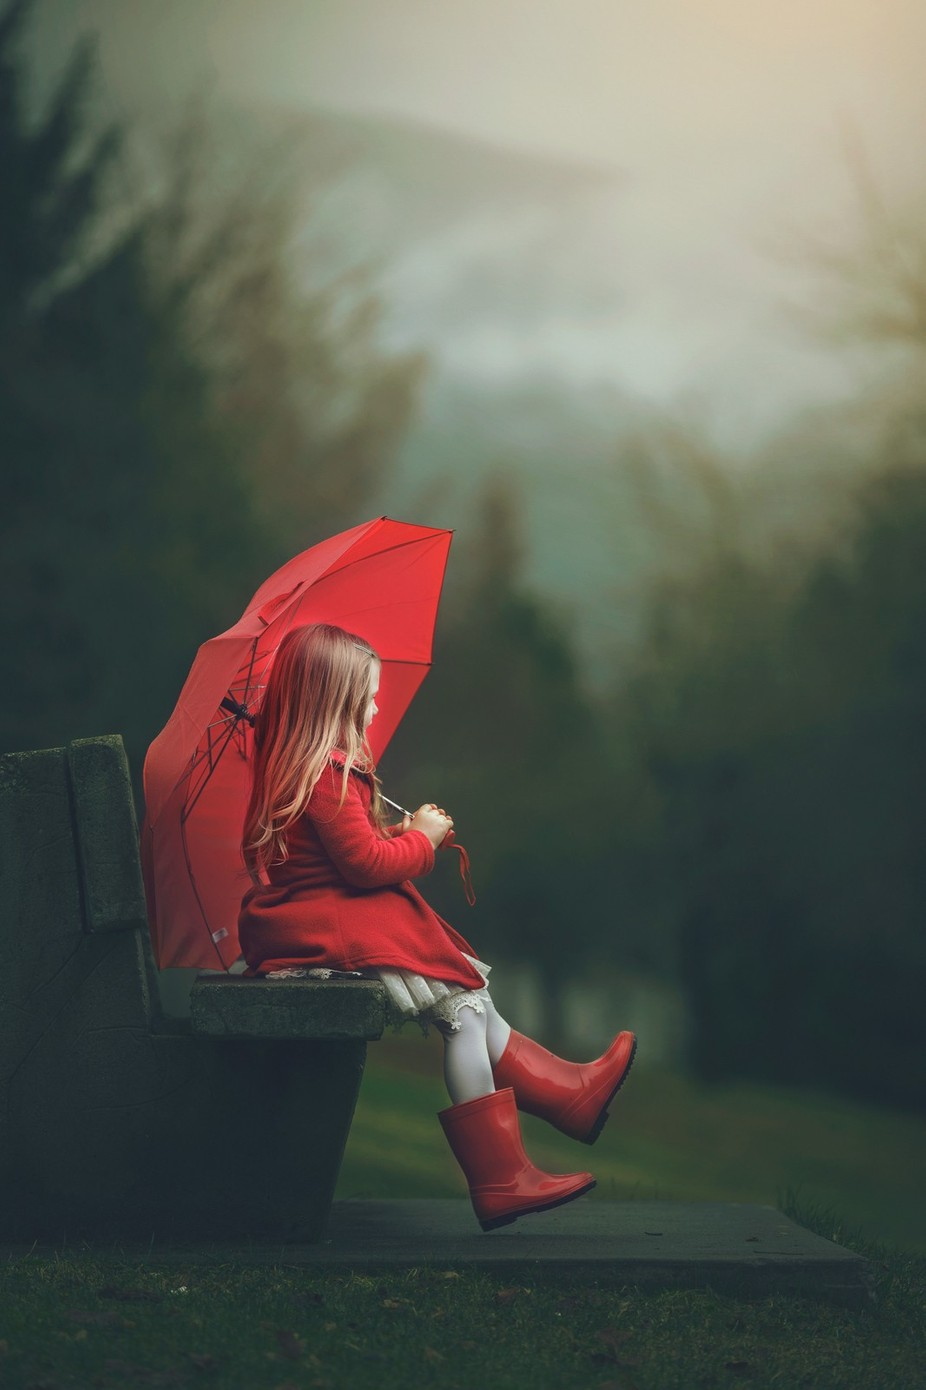 Red Umbrella by ashleycampbell_8229 - Anything People Photo Contest